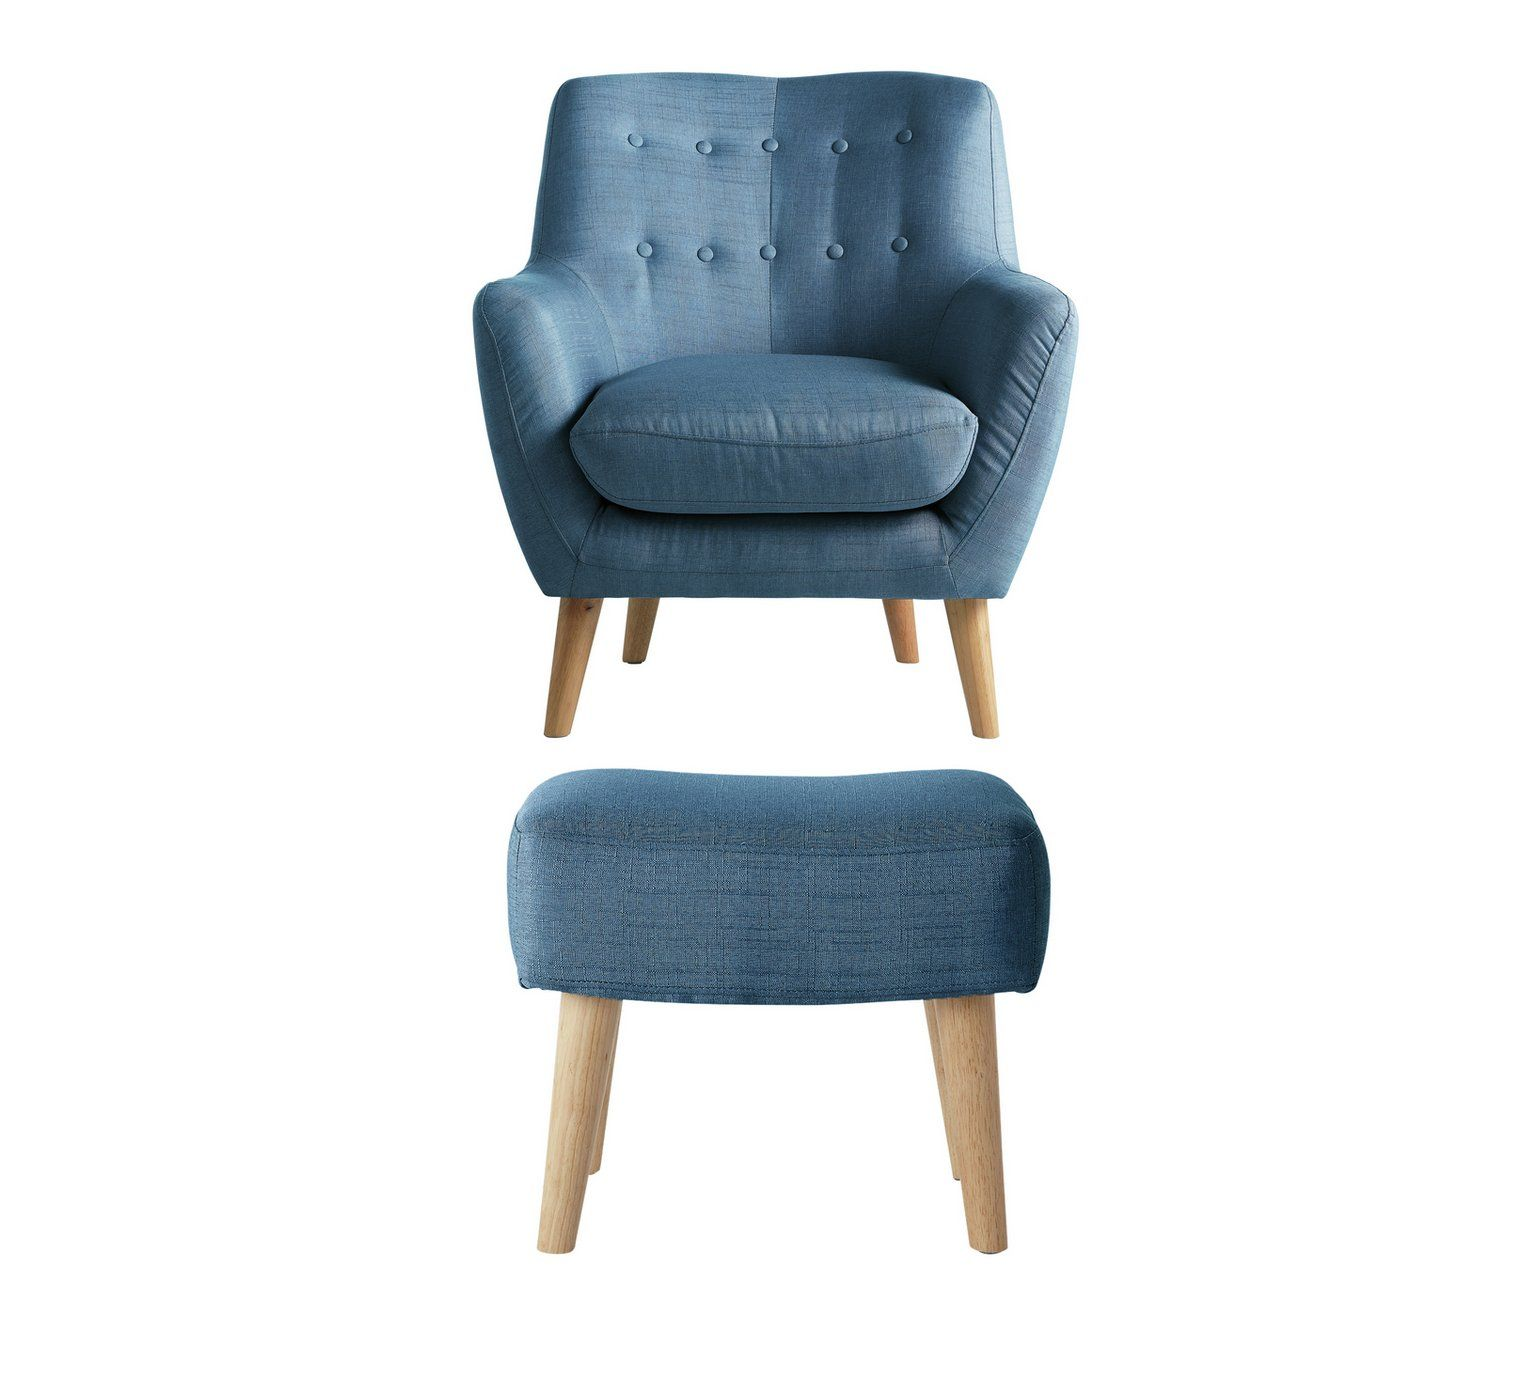 Buy Hygena Otis Fabric Chair and Footstool Blue at Argos